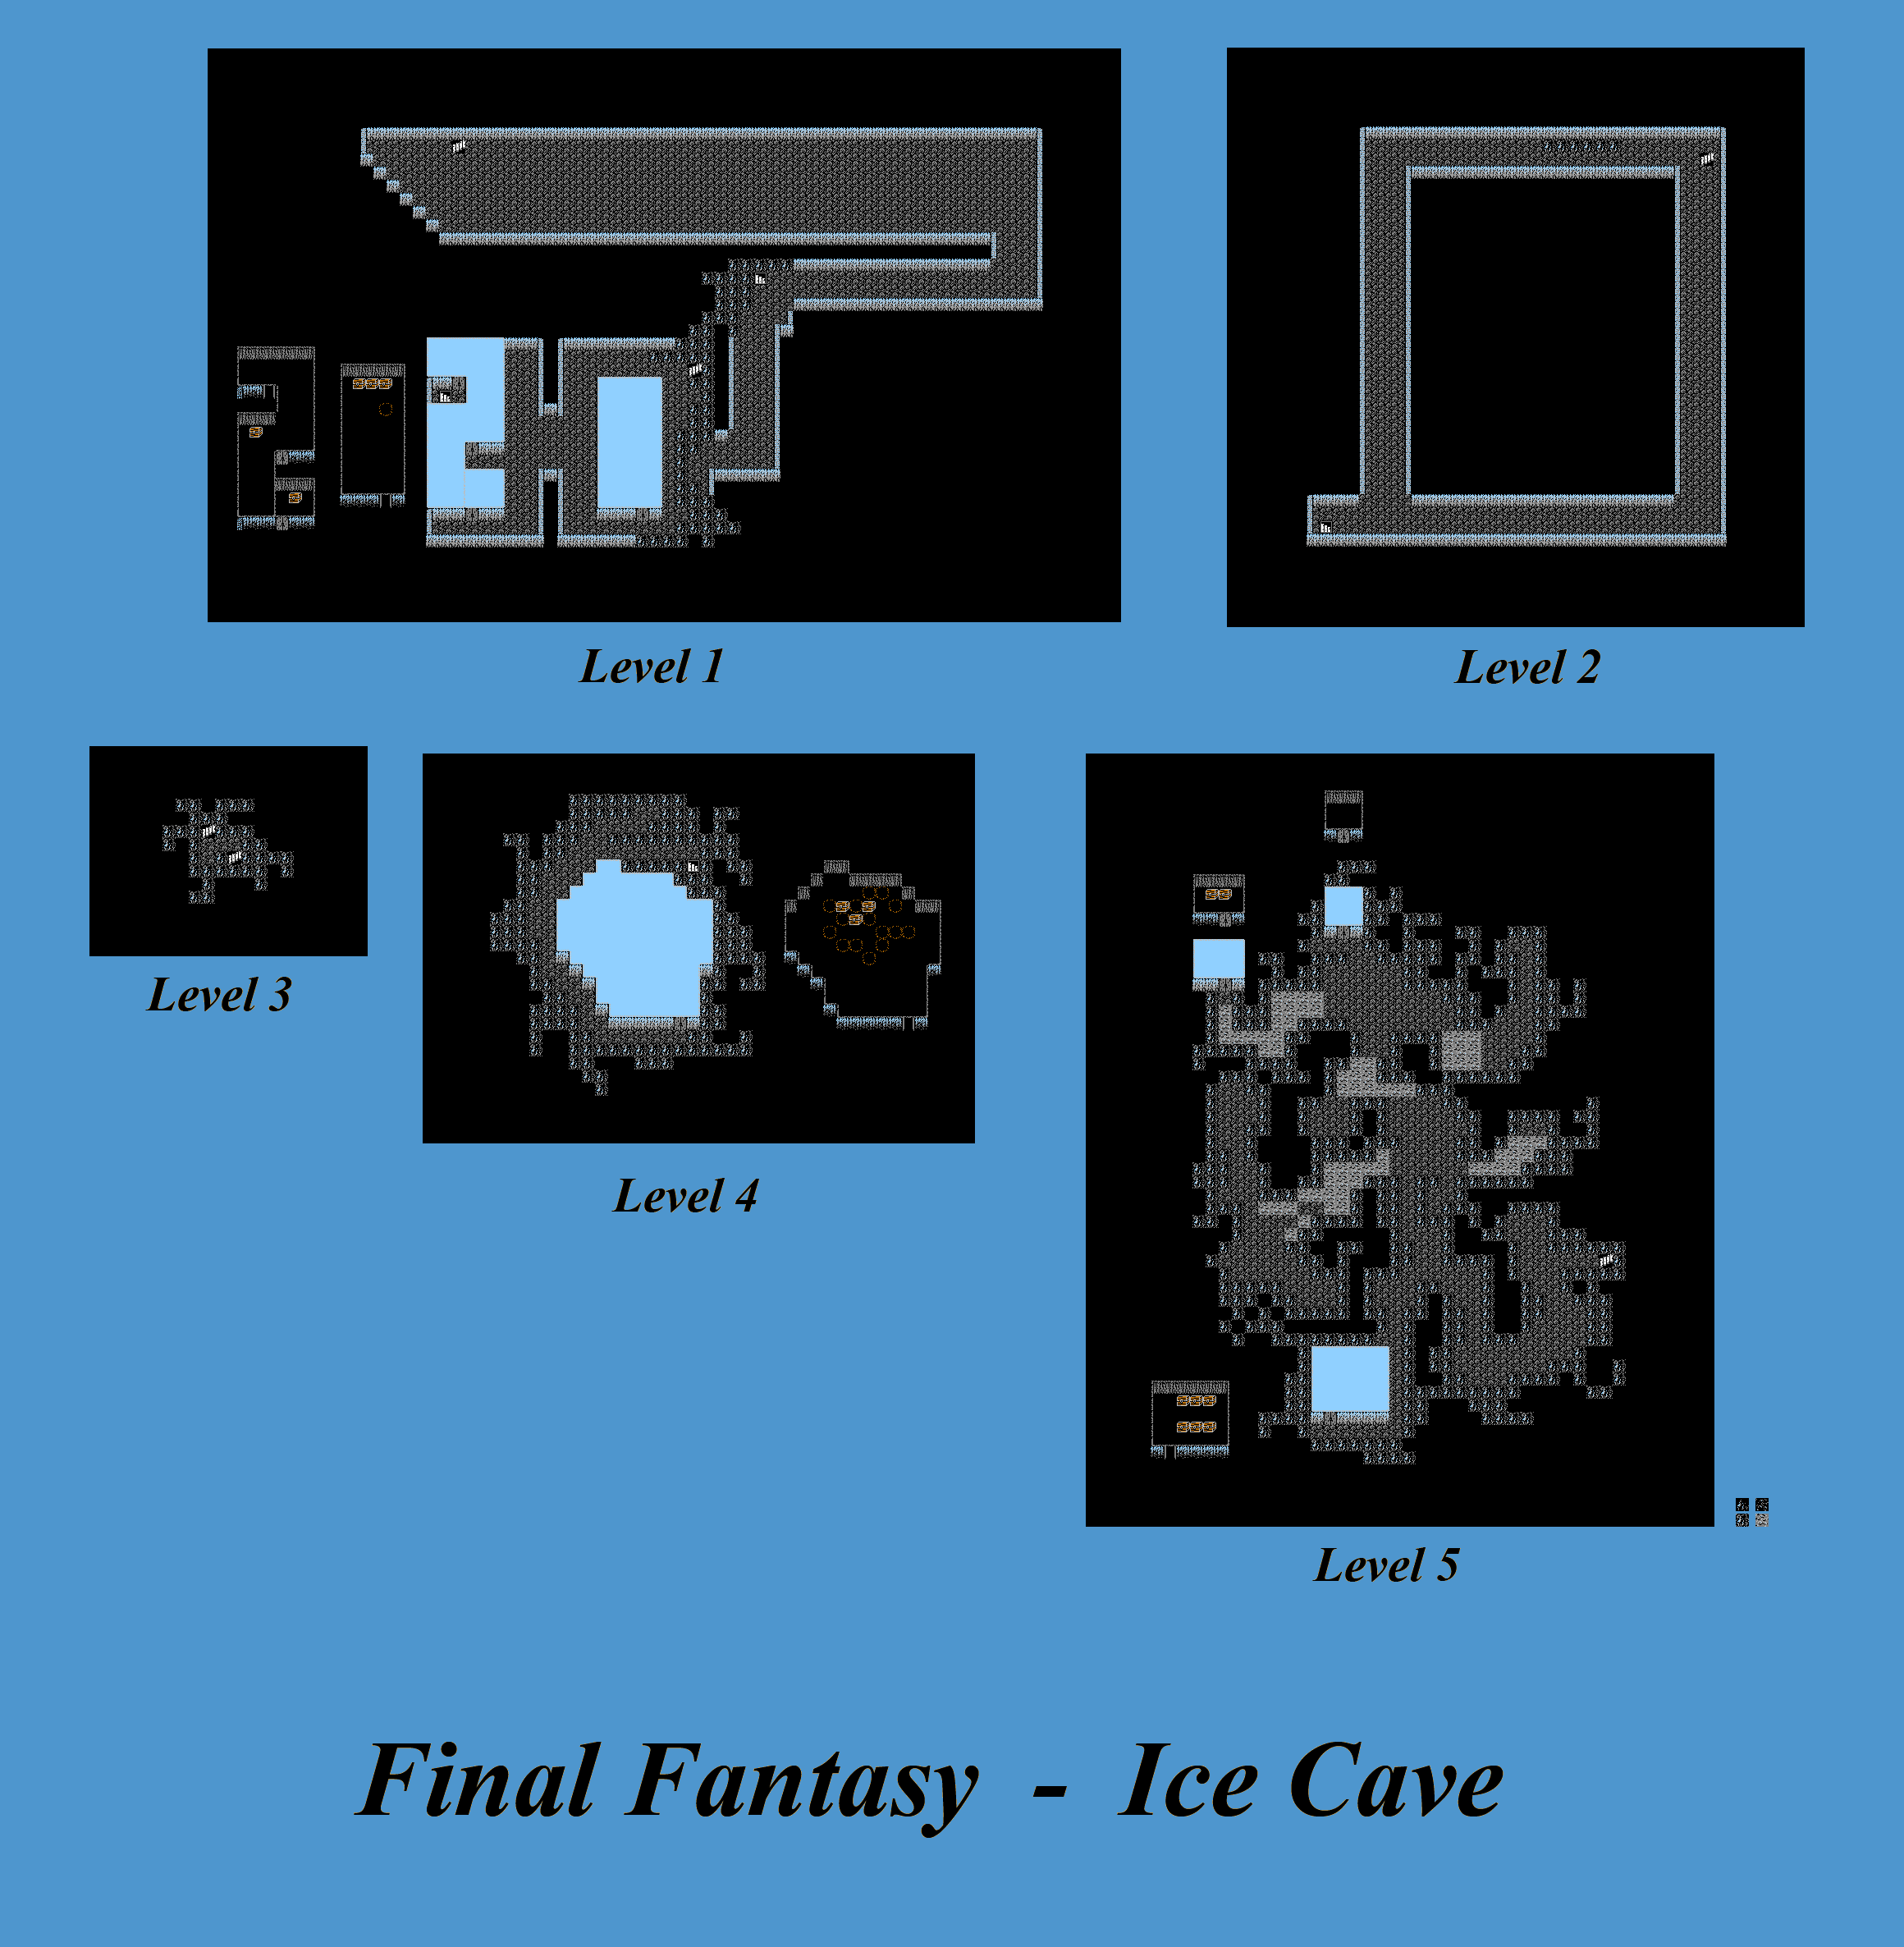 The Spriters Resource Full Sheet View Final Fantasy 1 Ice Cave